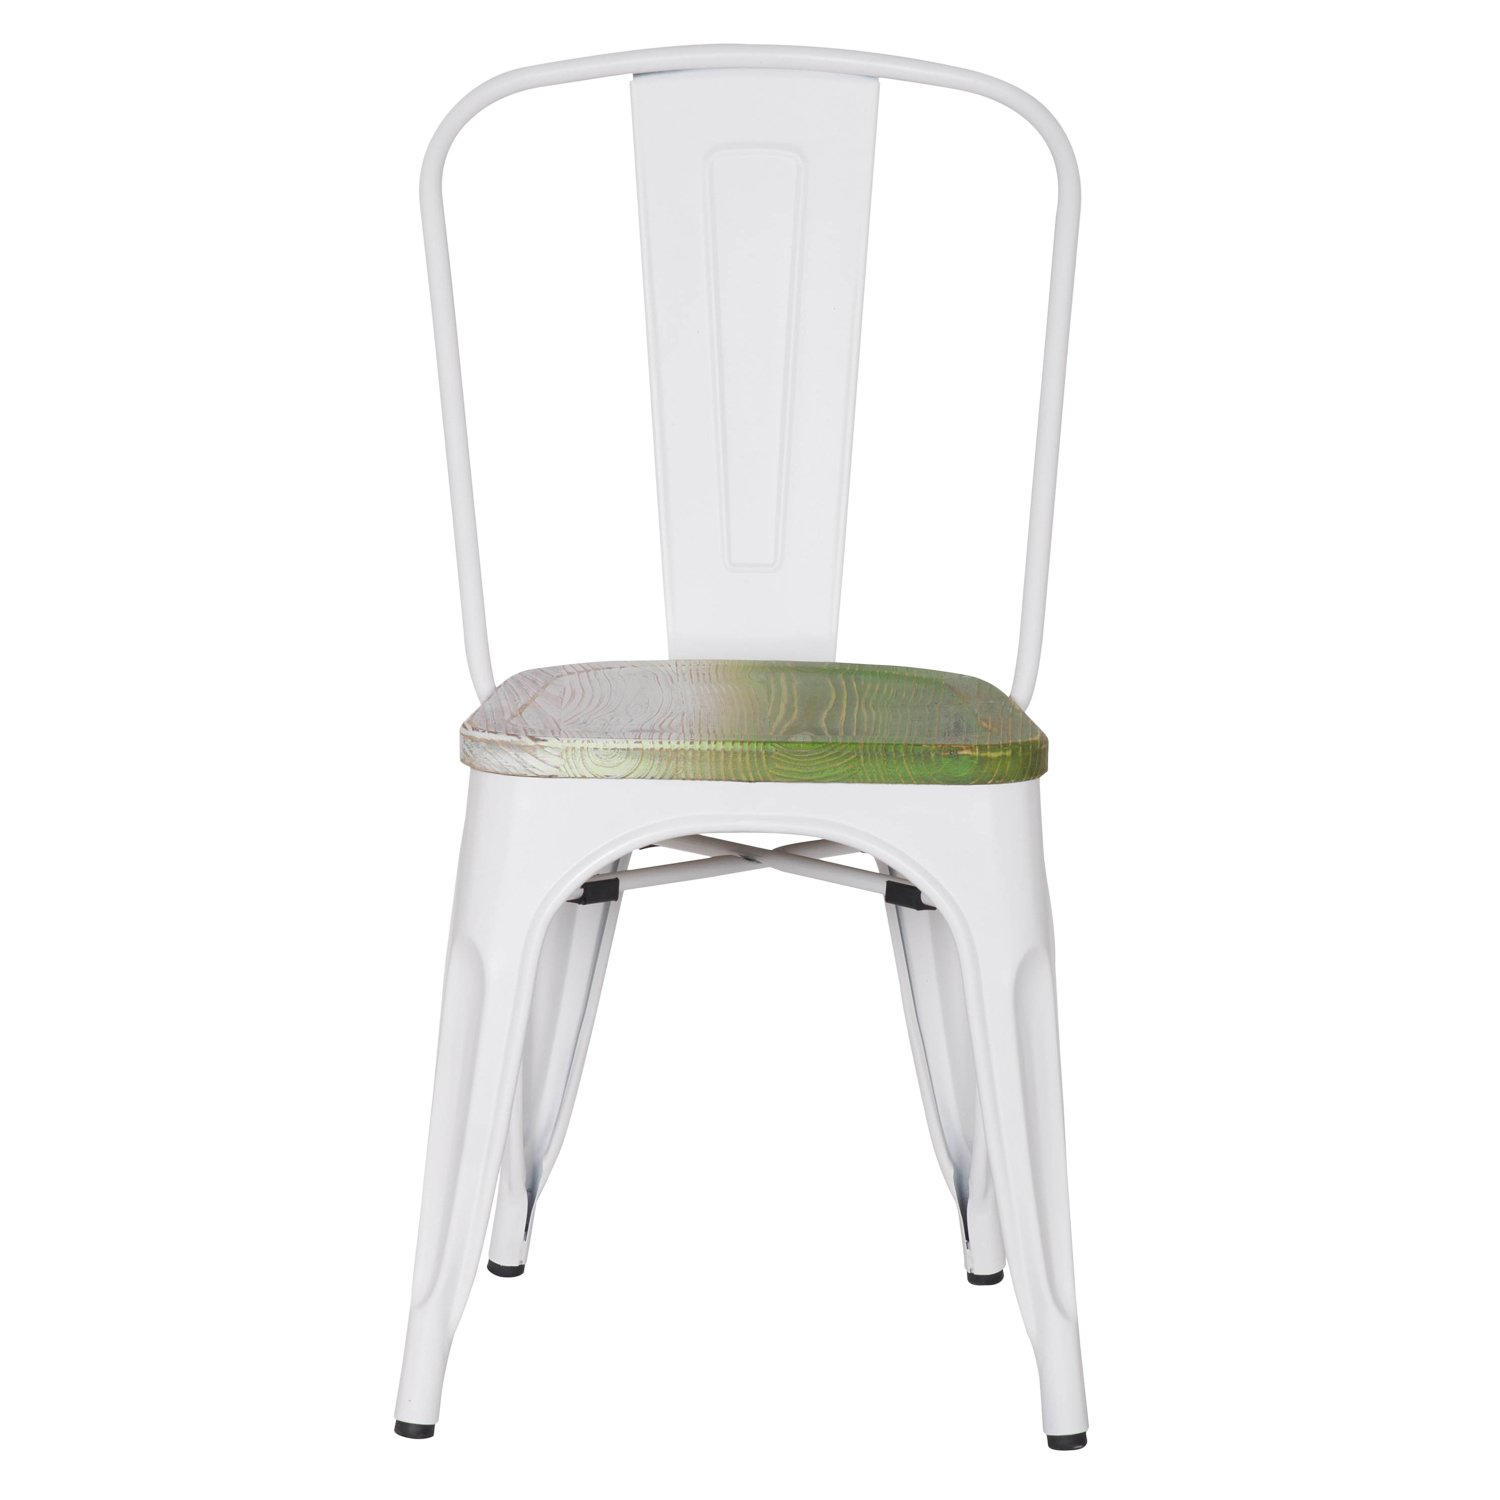 Asense Tolix Style Steel Dining Chair with Green Wooden Seat, Frosted White Color, Height 33 Inches , Set of 2